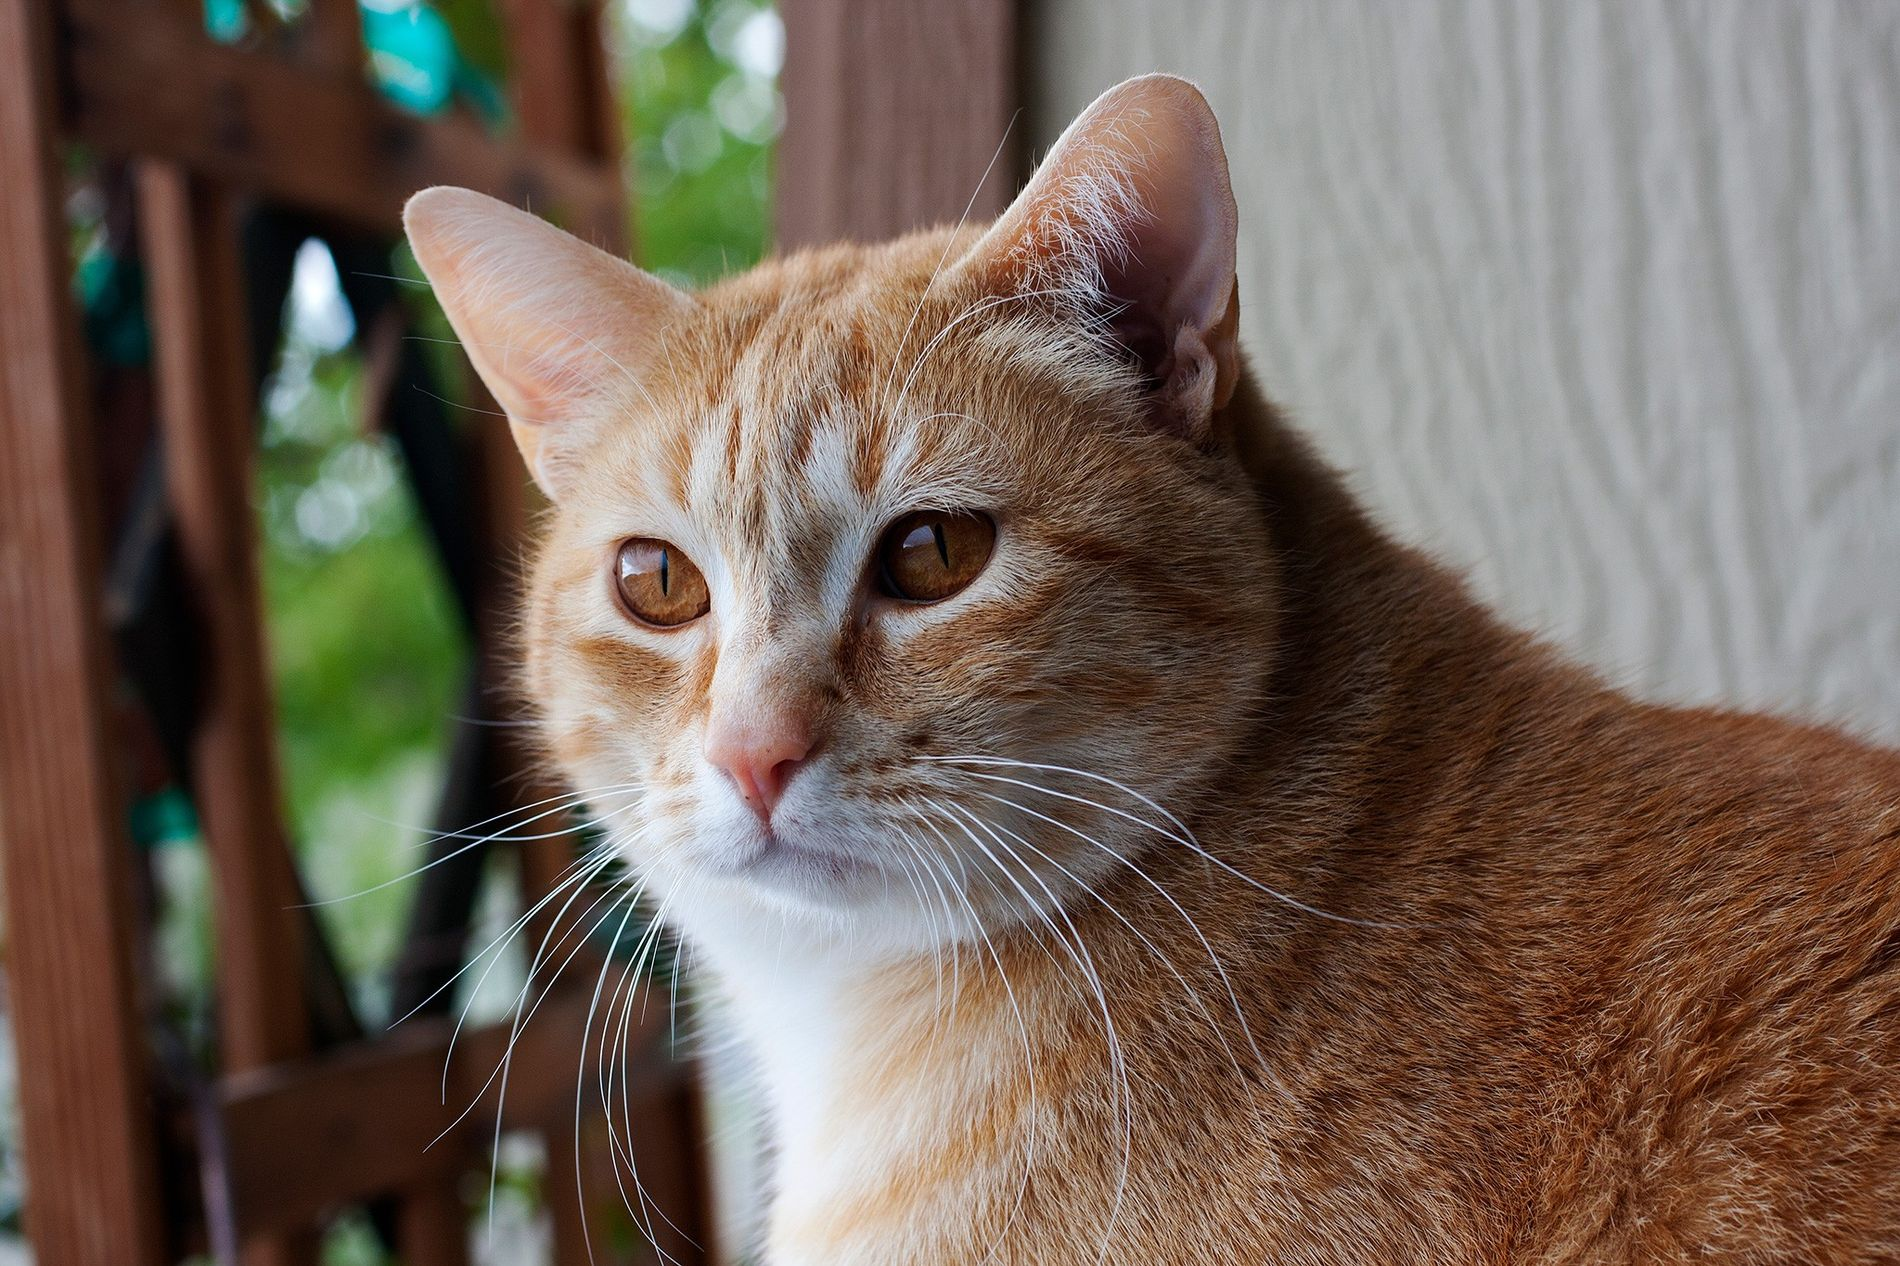 Cats associate their names with rewards, such as food and petting.